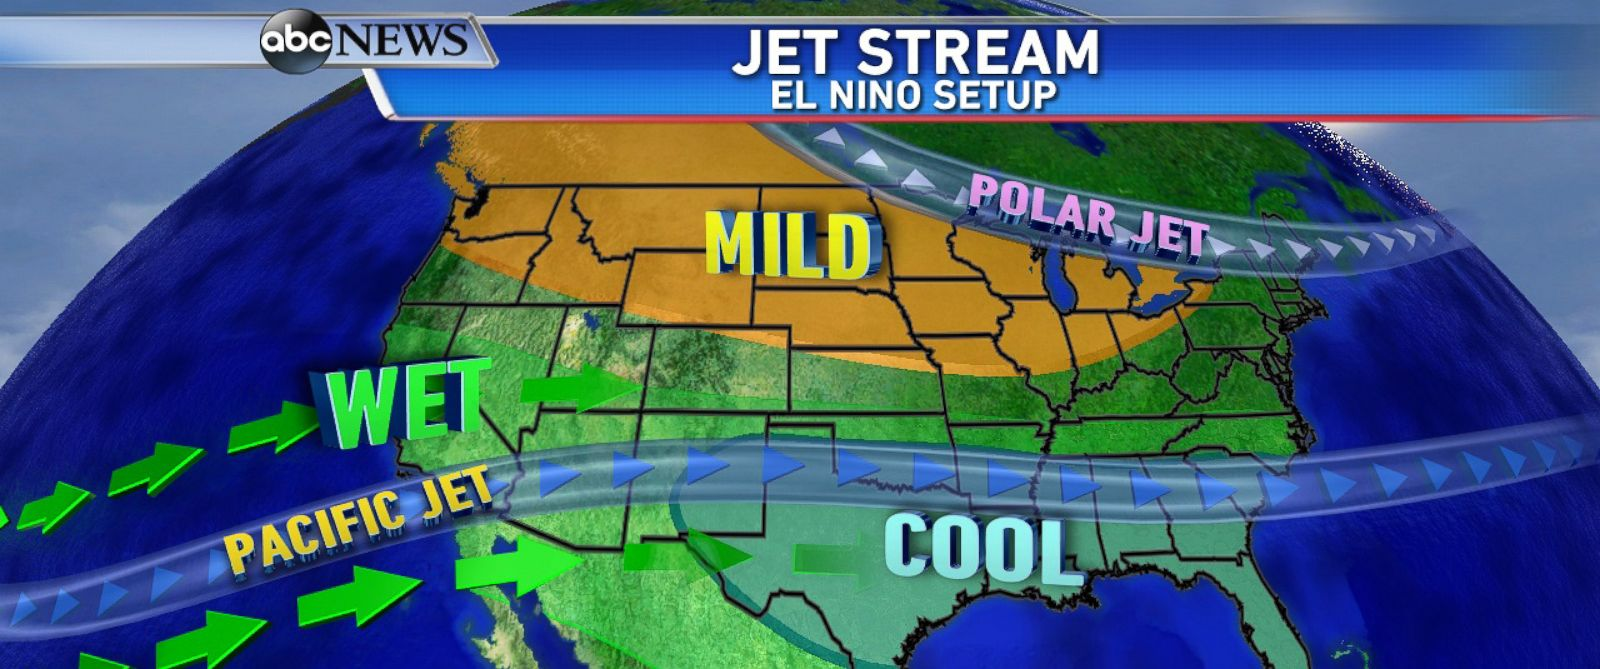 PHOTO: Typical setup during an El Nino event for January - March.